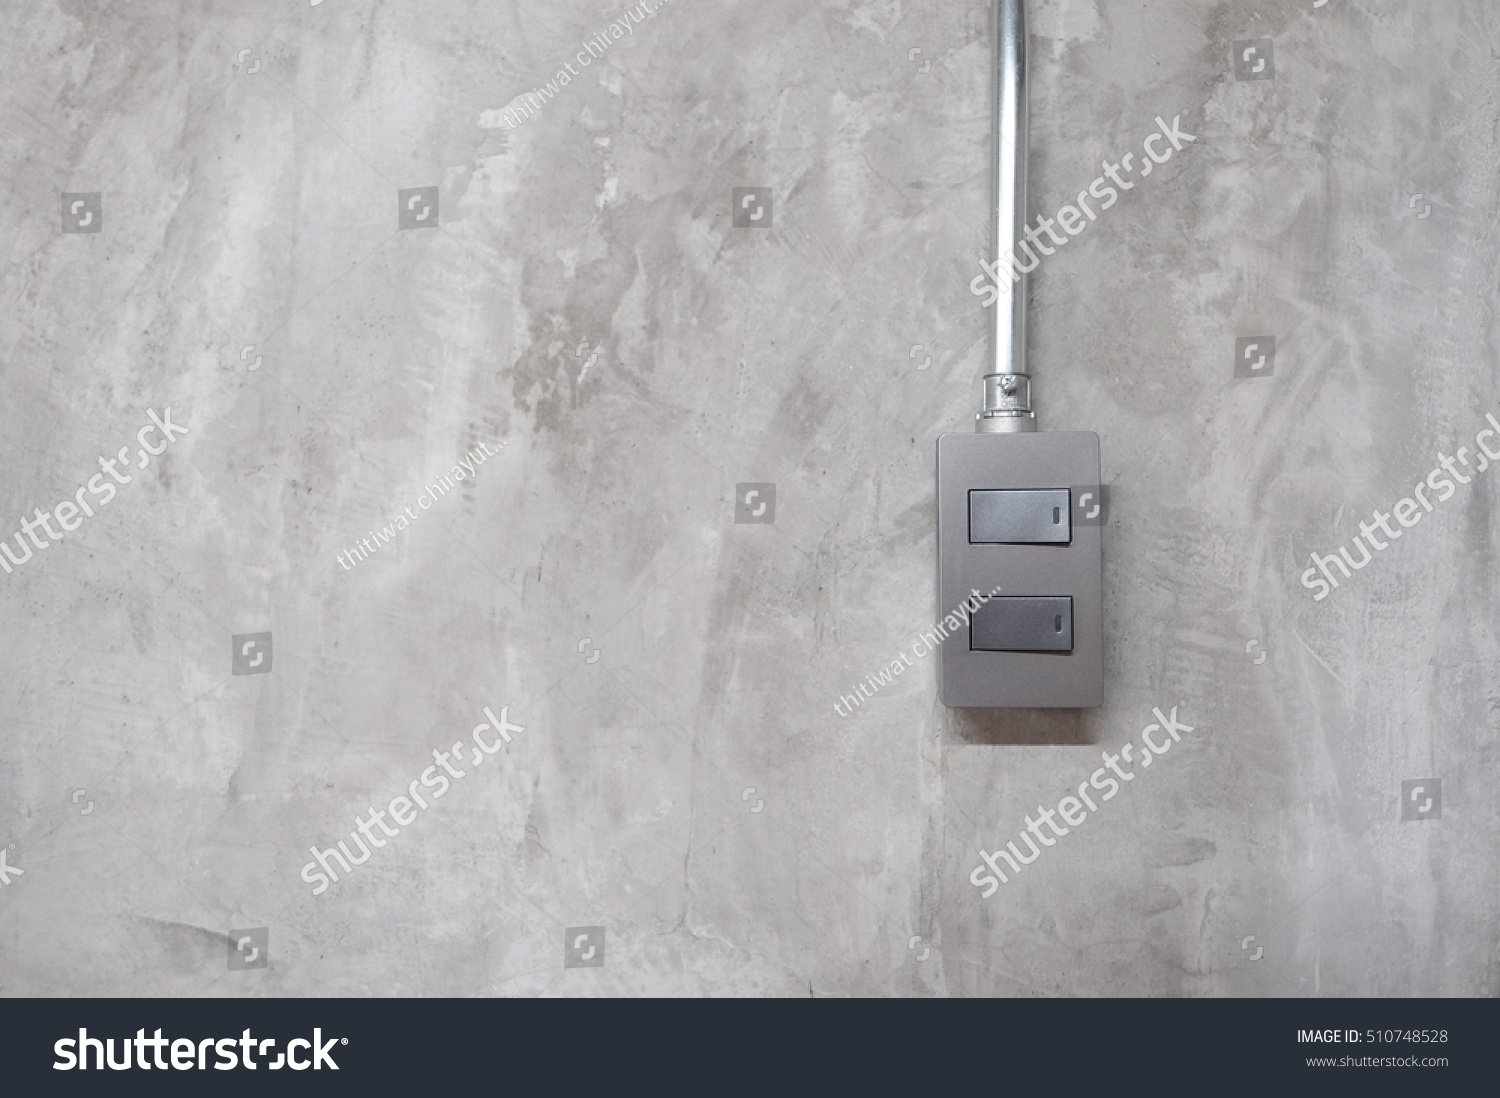 Outlet Steel Pipe Electric Wire On Stock Photo Edit Now 510748528 Wiring Cable And Concrete Wall Background Loft Style